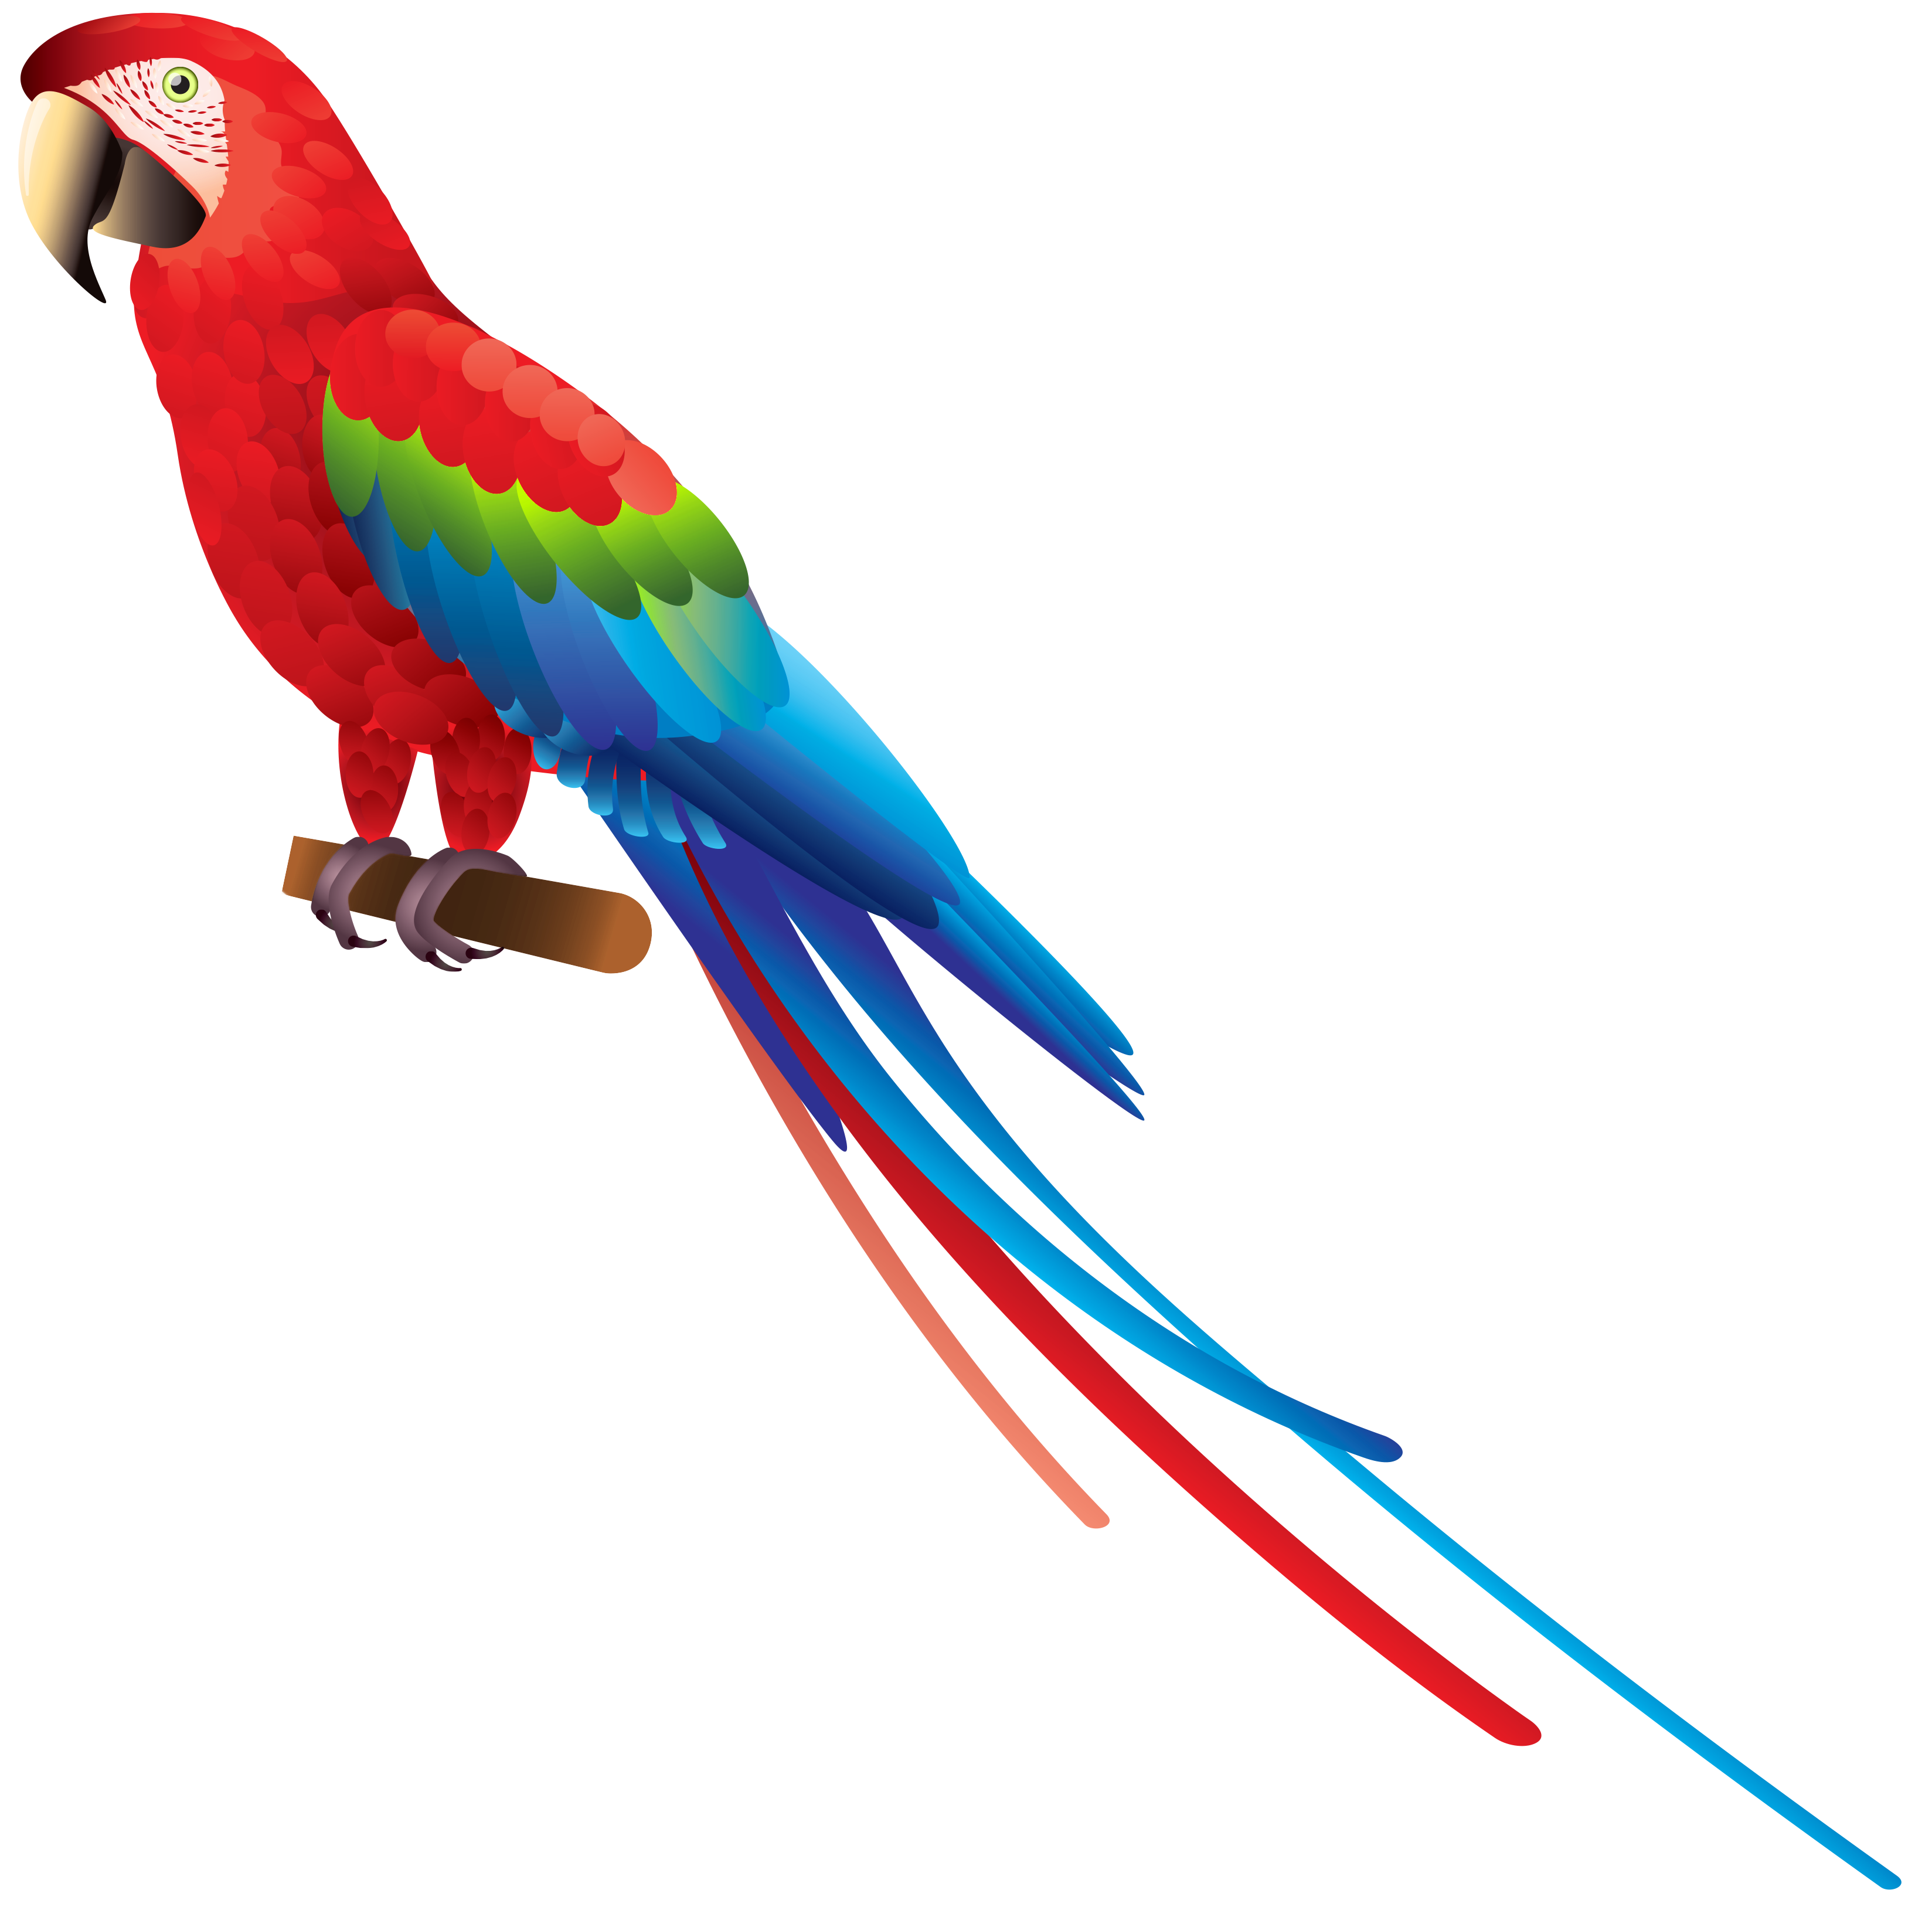 Parrots Clipart Free Download Best On Parrot Origamiorigami Macaw Parrotorigami Diagram 3296x3282 Colourful Bird 550x447 Red